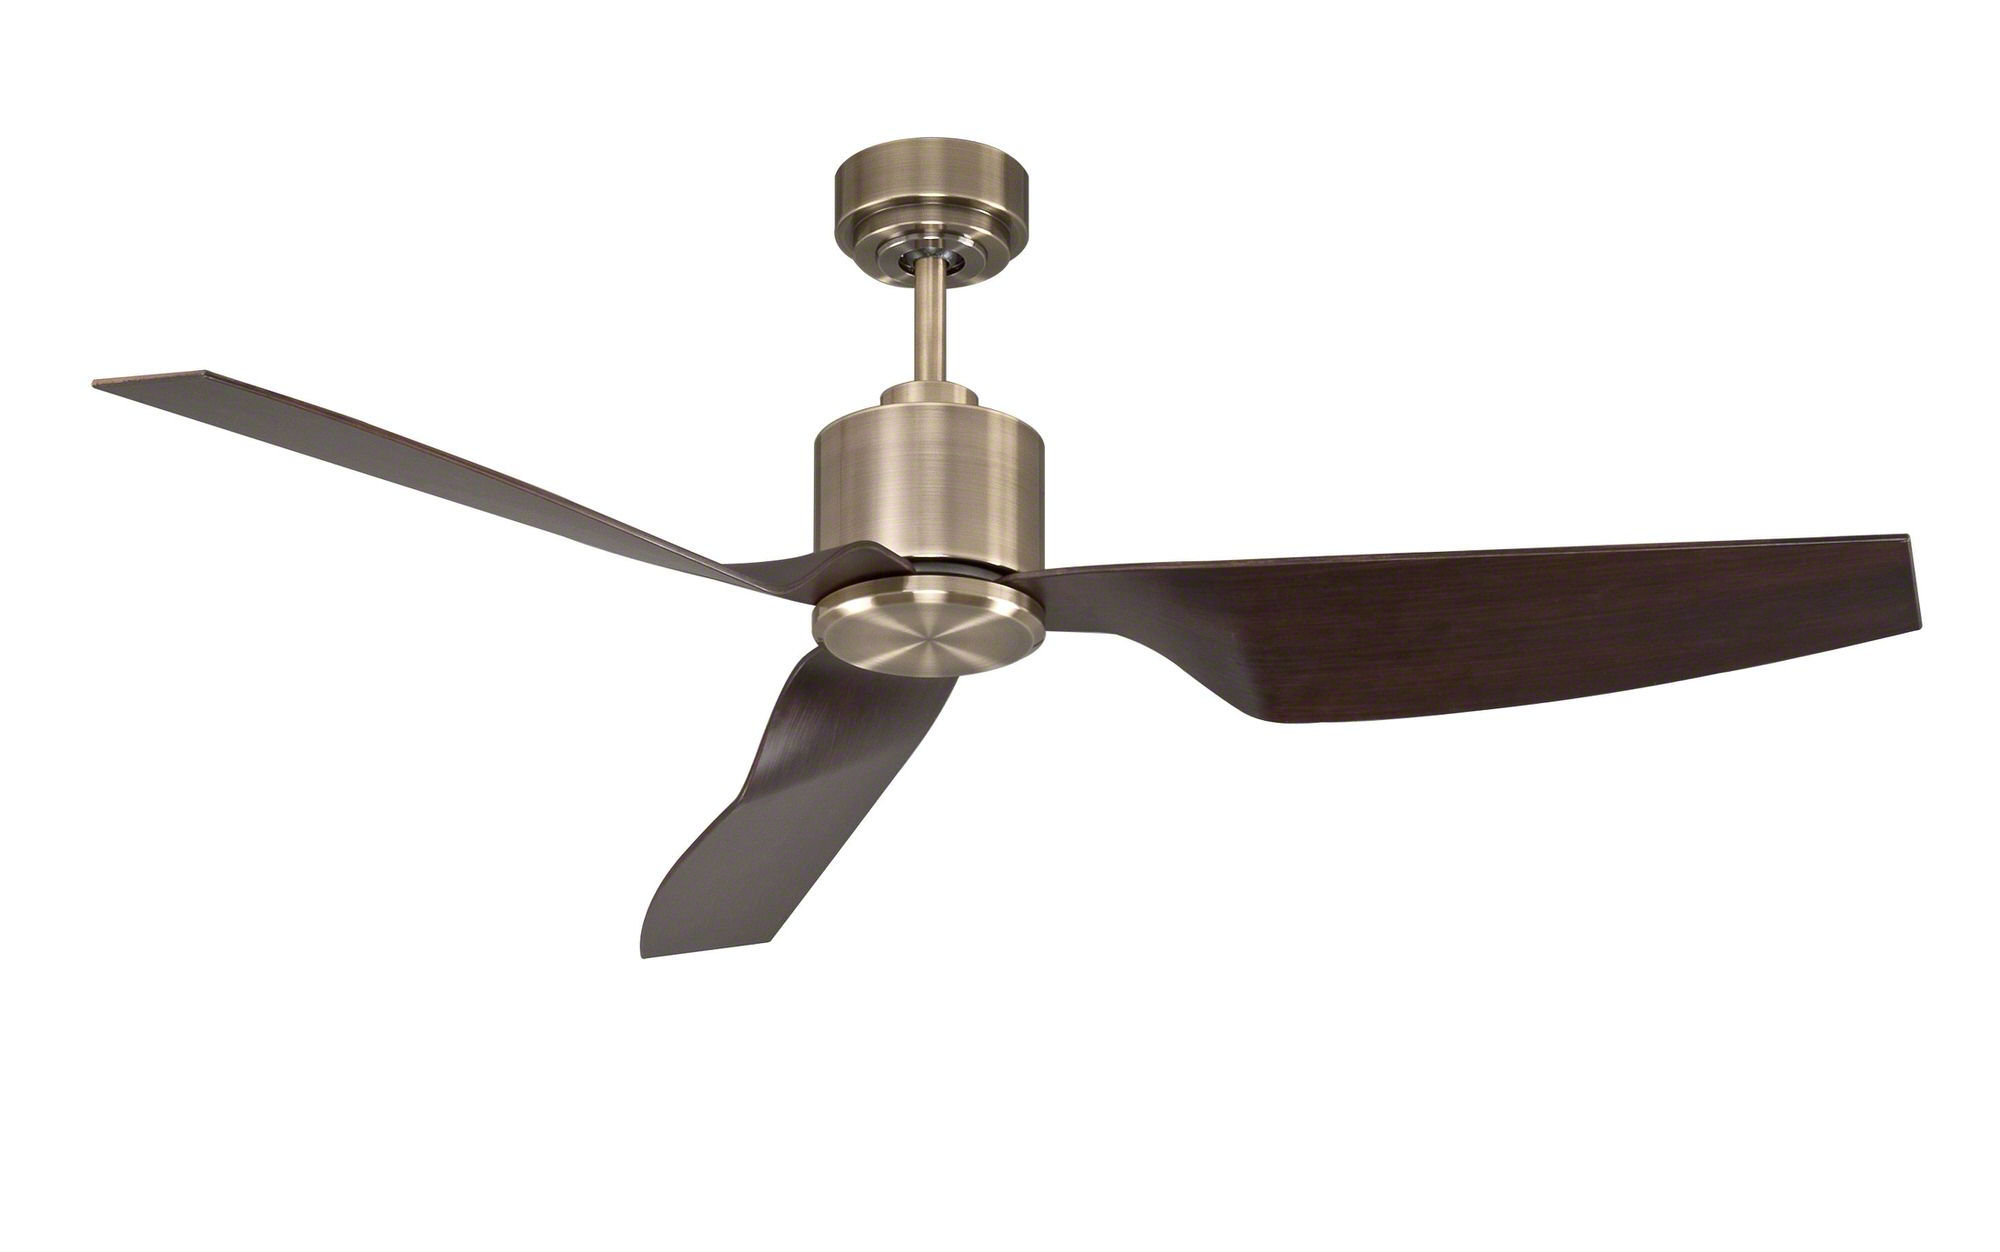 Lucci Airfusion Climate Ii Low Energy Dc Ceiling Fan 50